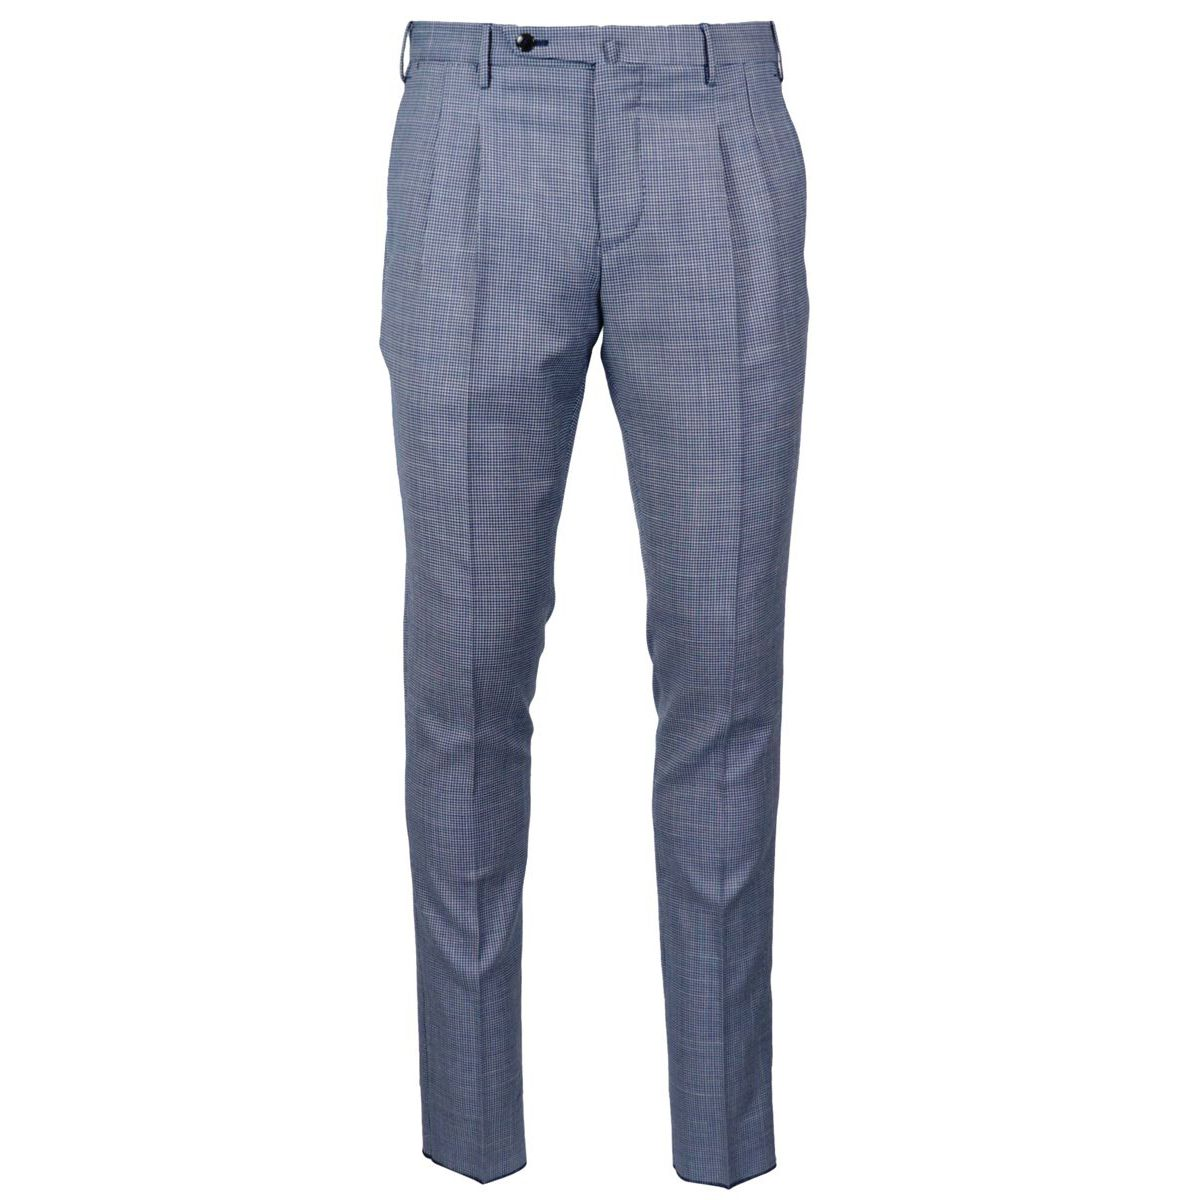 Light wool skinny trousers with pleats Heavenly PT TORINO